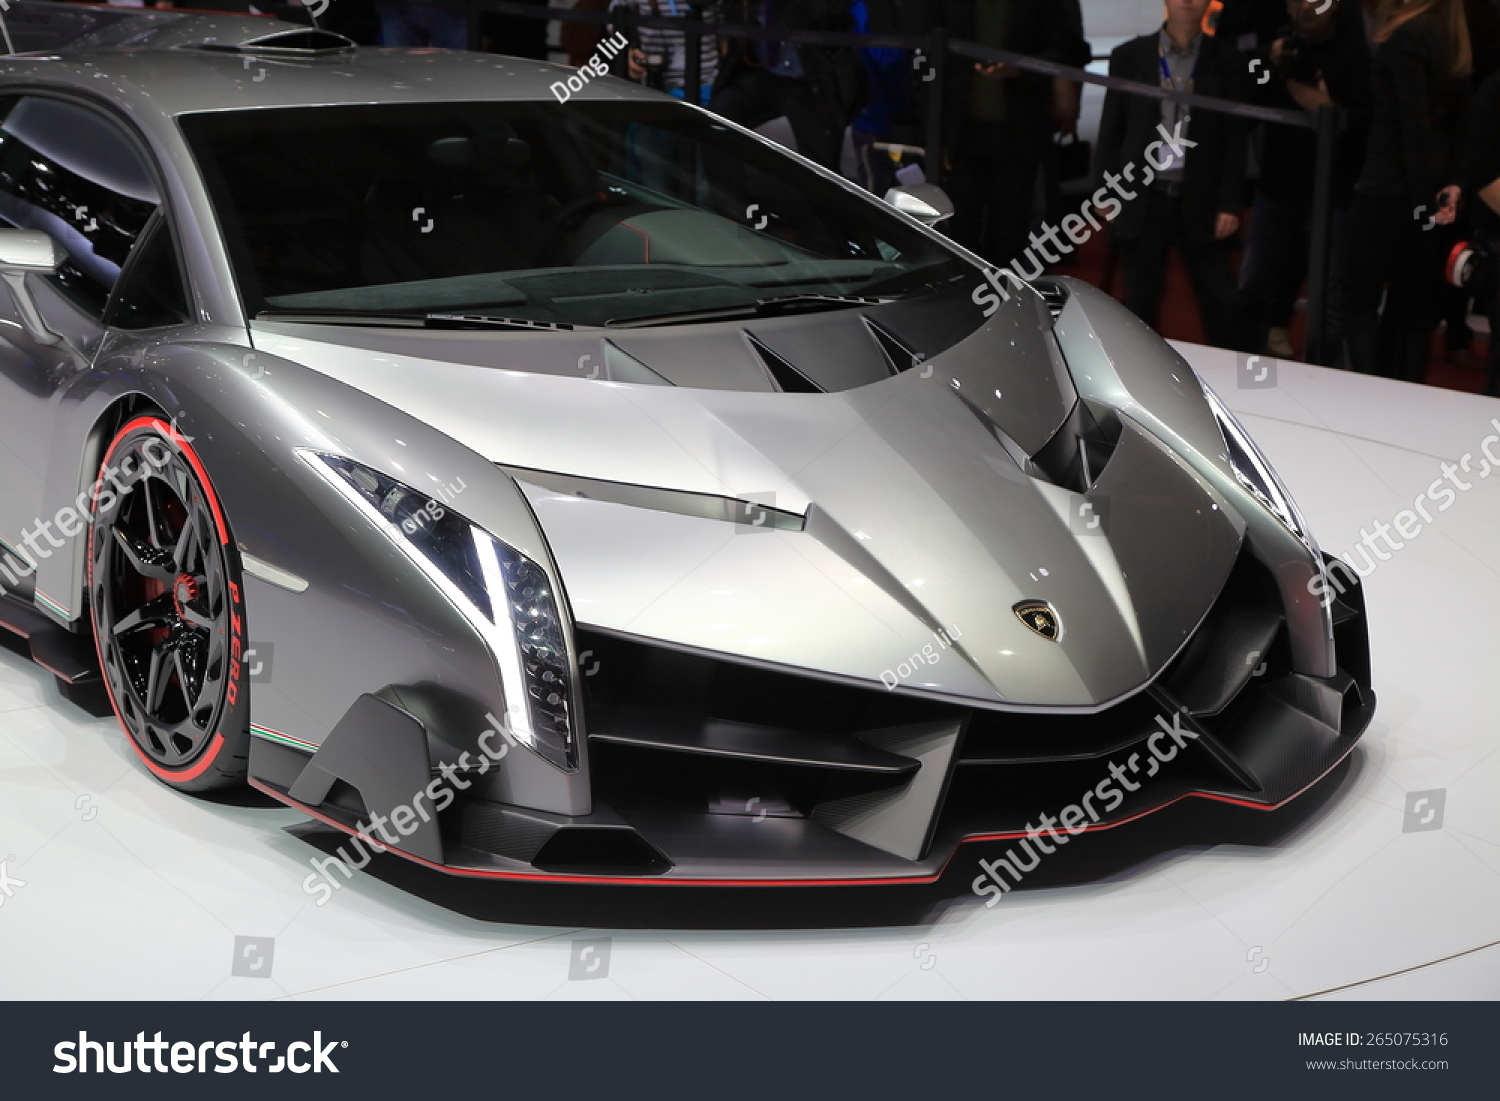 Geneva March 3 Lamborghini Veneno Roadster Stock Photo Edit Now